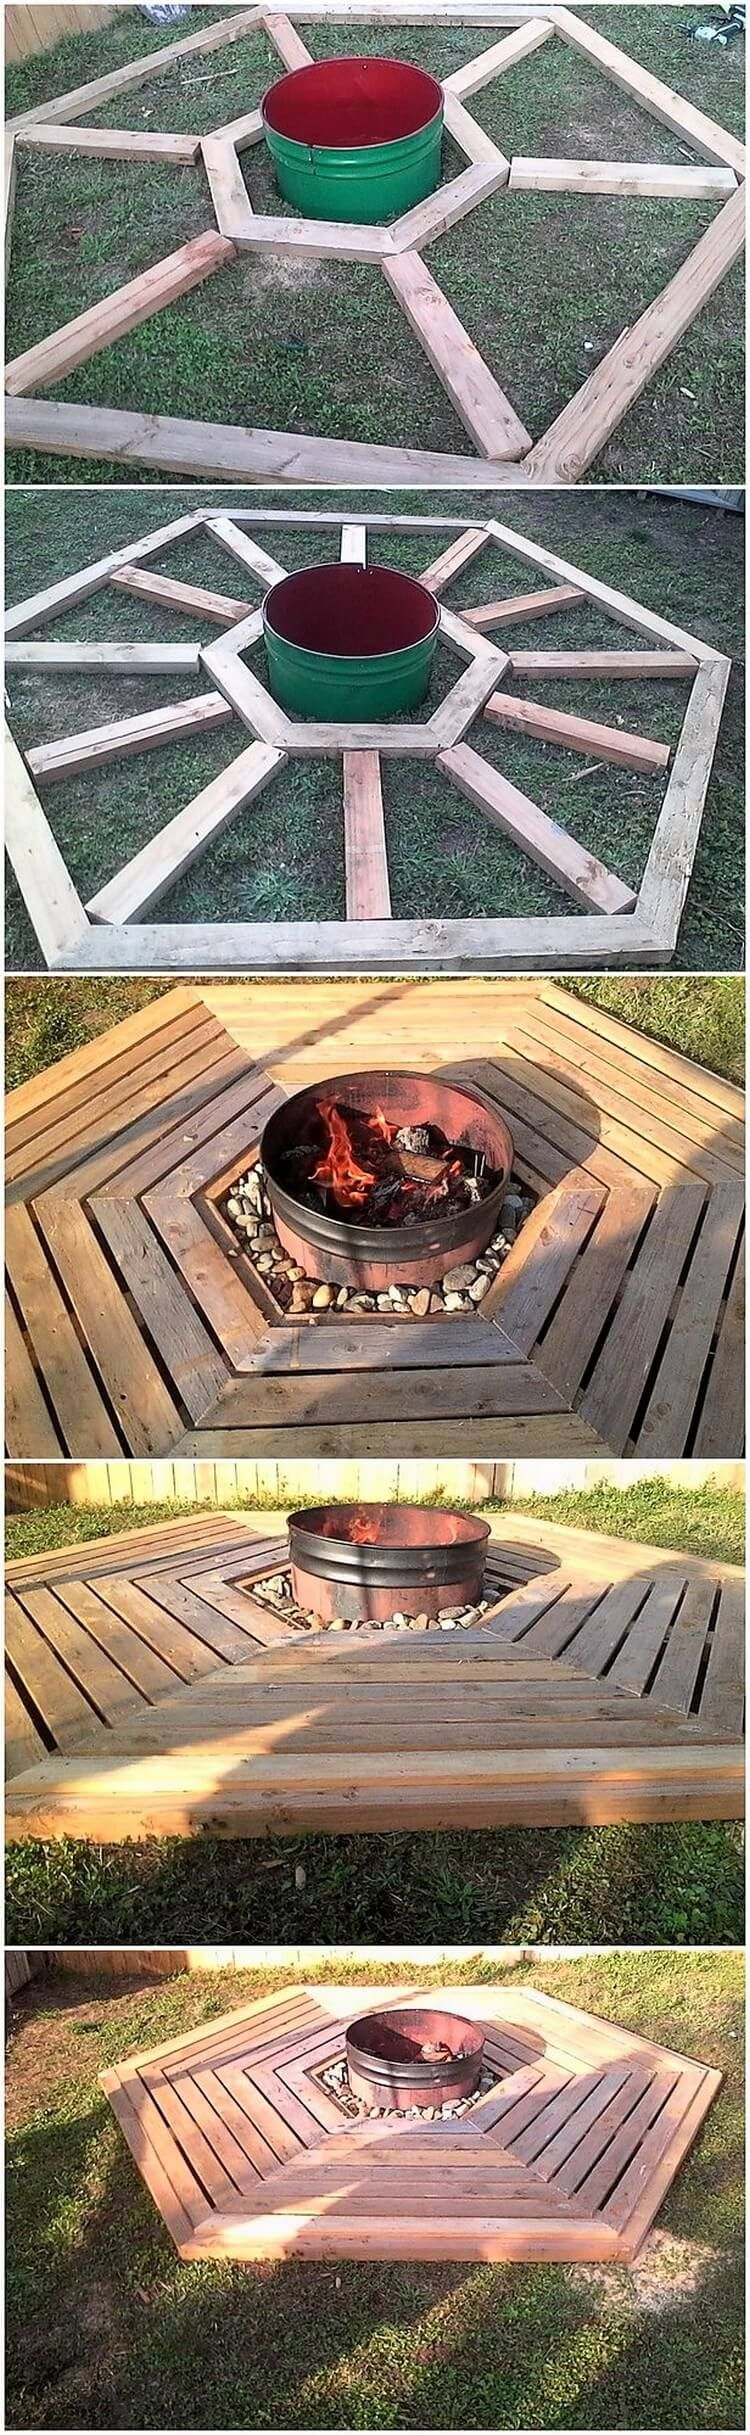 best diy ideas using shipping wood pallets for your house - Garden Ideas Using Wooden Pallets